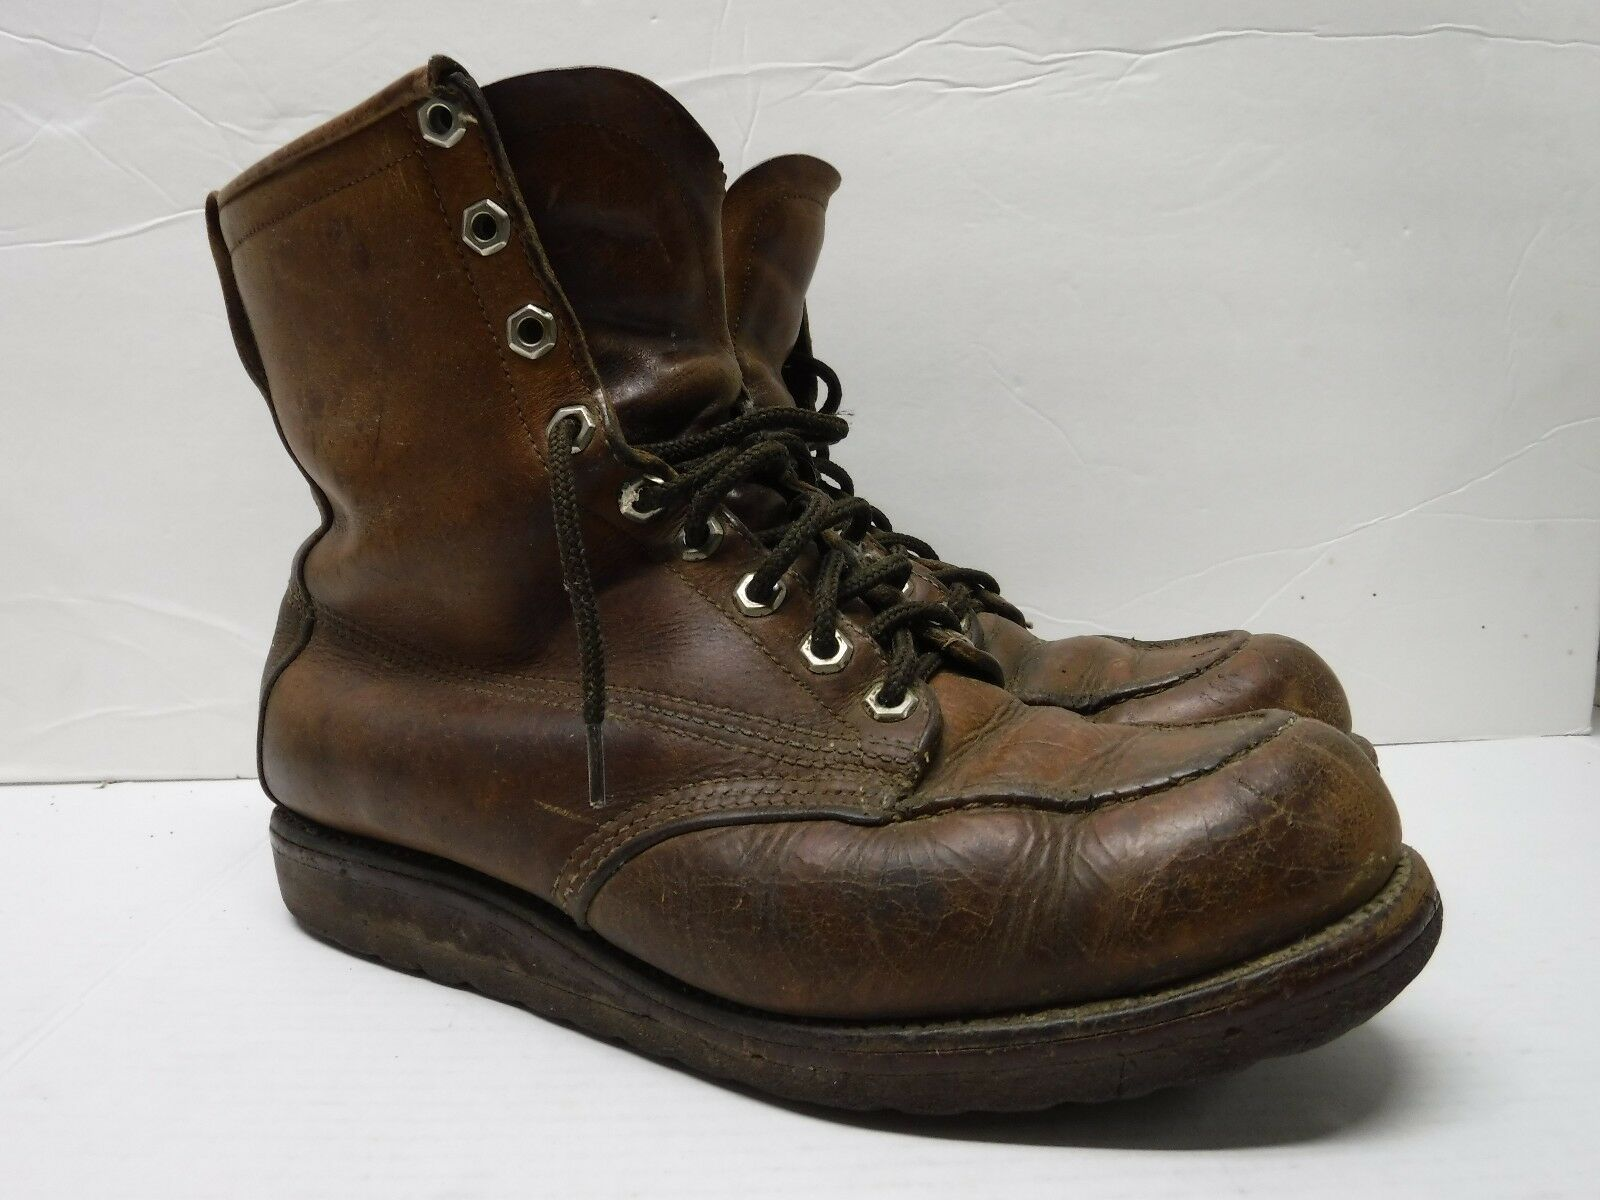 vtg HUDSON BAY Men's Size 9 C Hiking Work Insulated Brown Leather Boots